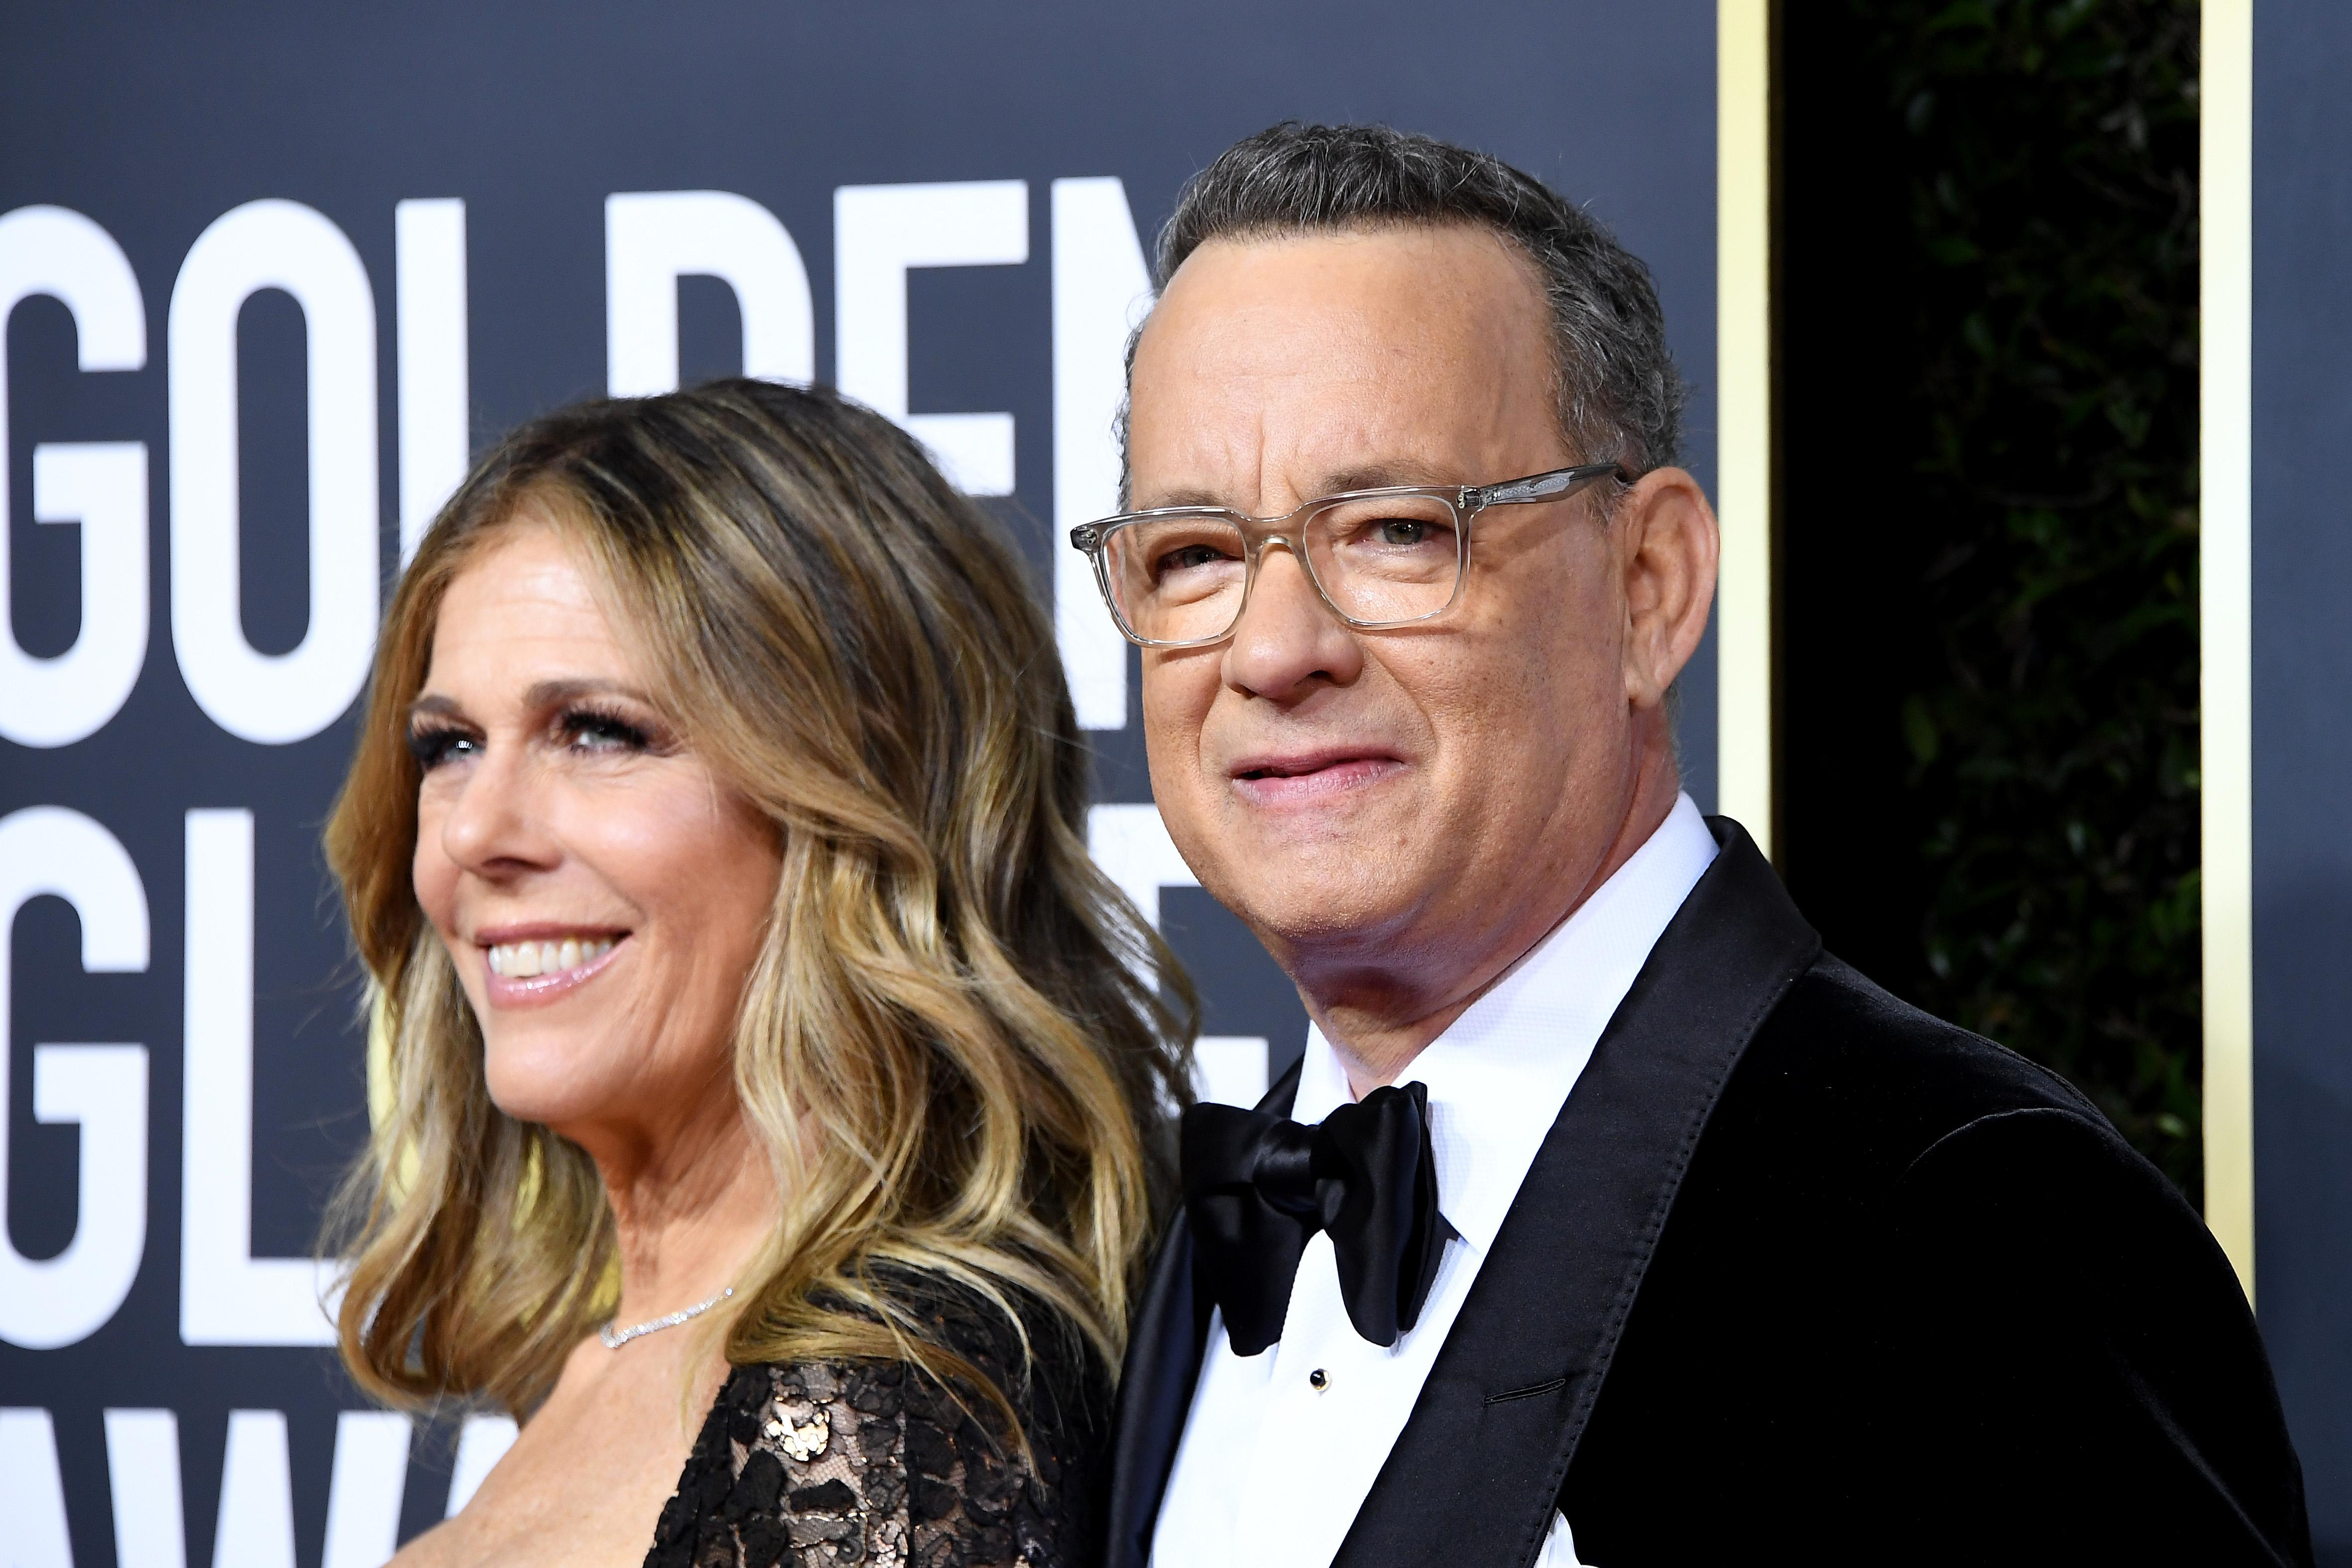 BEVERLY HILLS, CALIFORNIA - JANUARY 05: (L-R) Rita Wilson and Tom Hanks attend the 77th Annual Golden Globe Awards at The Beverly Hilton Hotel on January 05, 2020 in Beverly Hills, California. (Photo by Steve Granitz/WireImage)